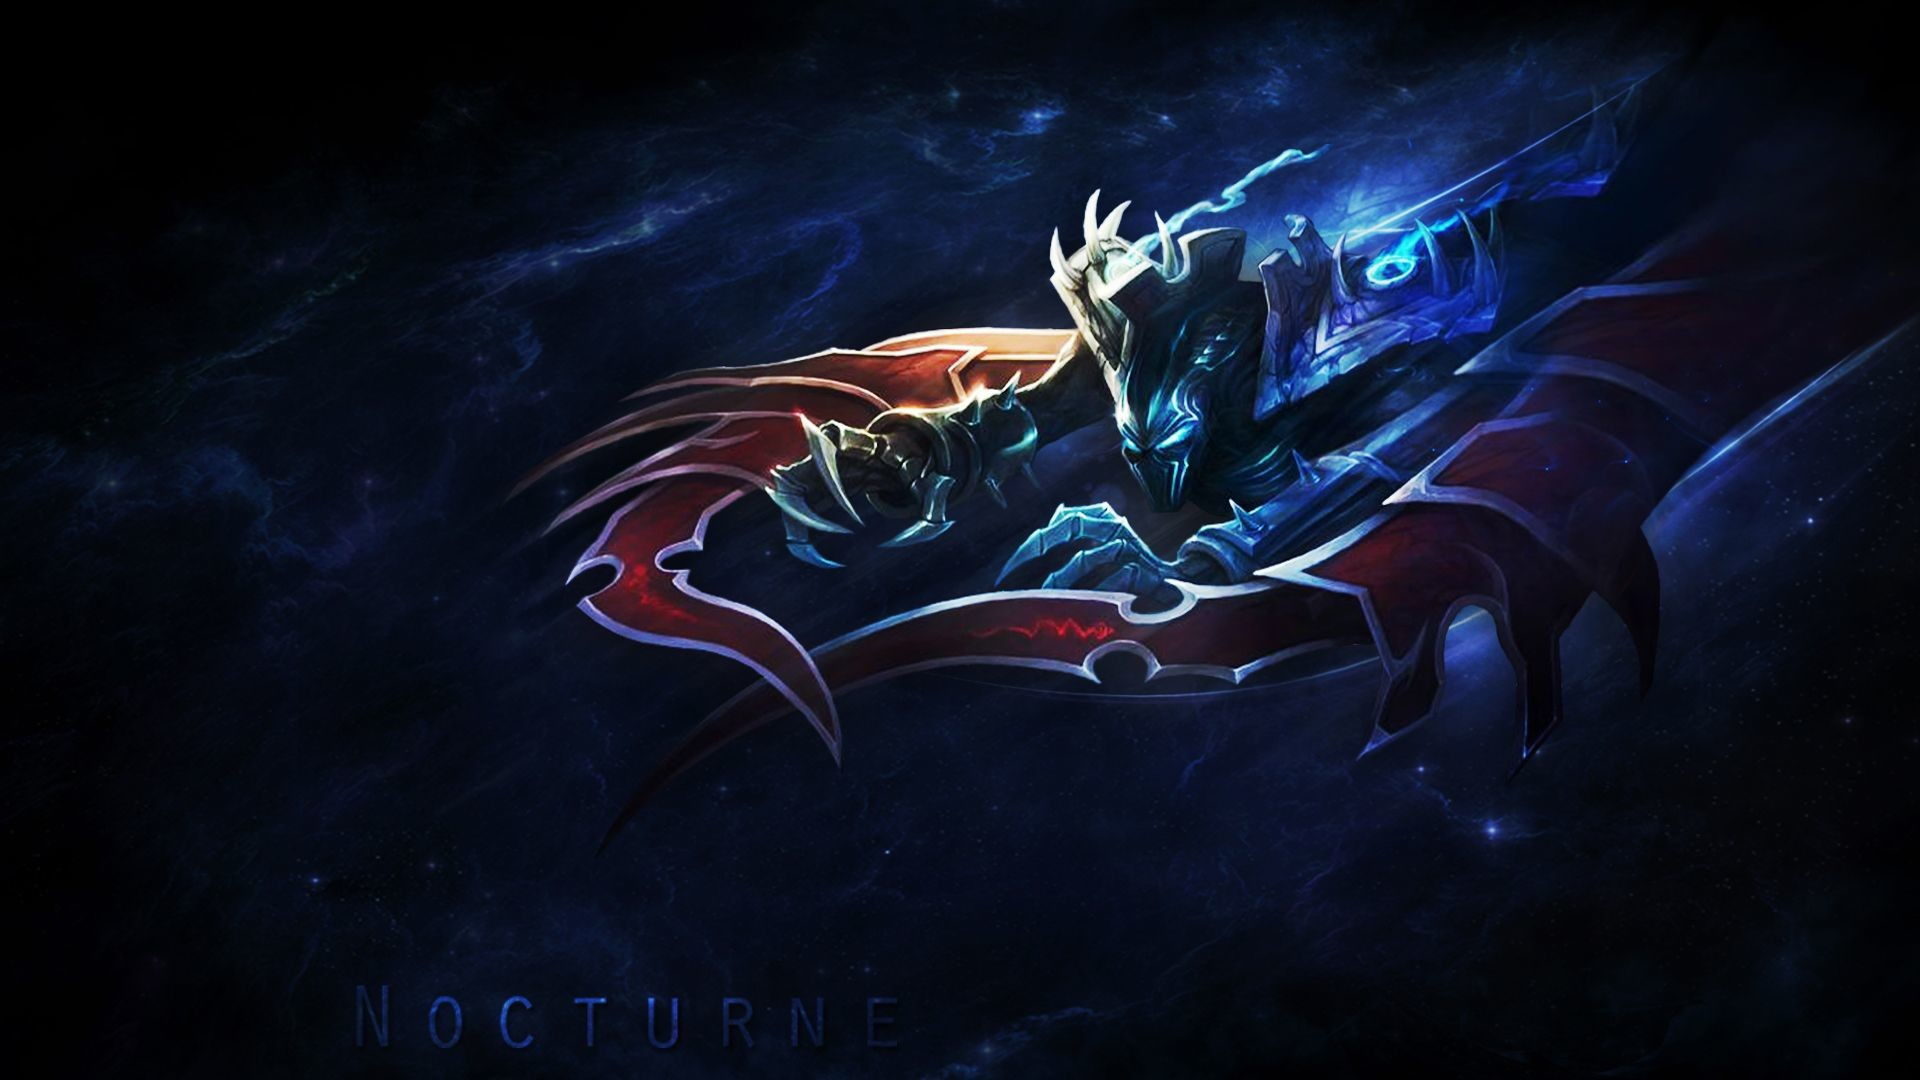 1920x1080  Nocturne Wallpapers Group (76+) · Download · yasuo wallpaper   hd ...